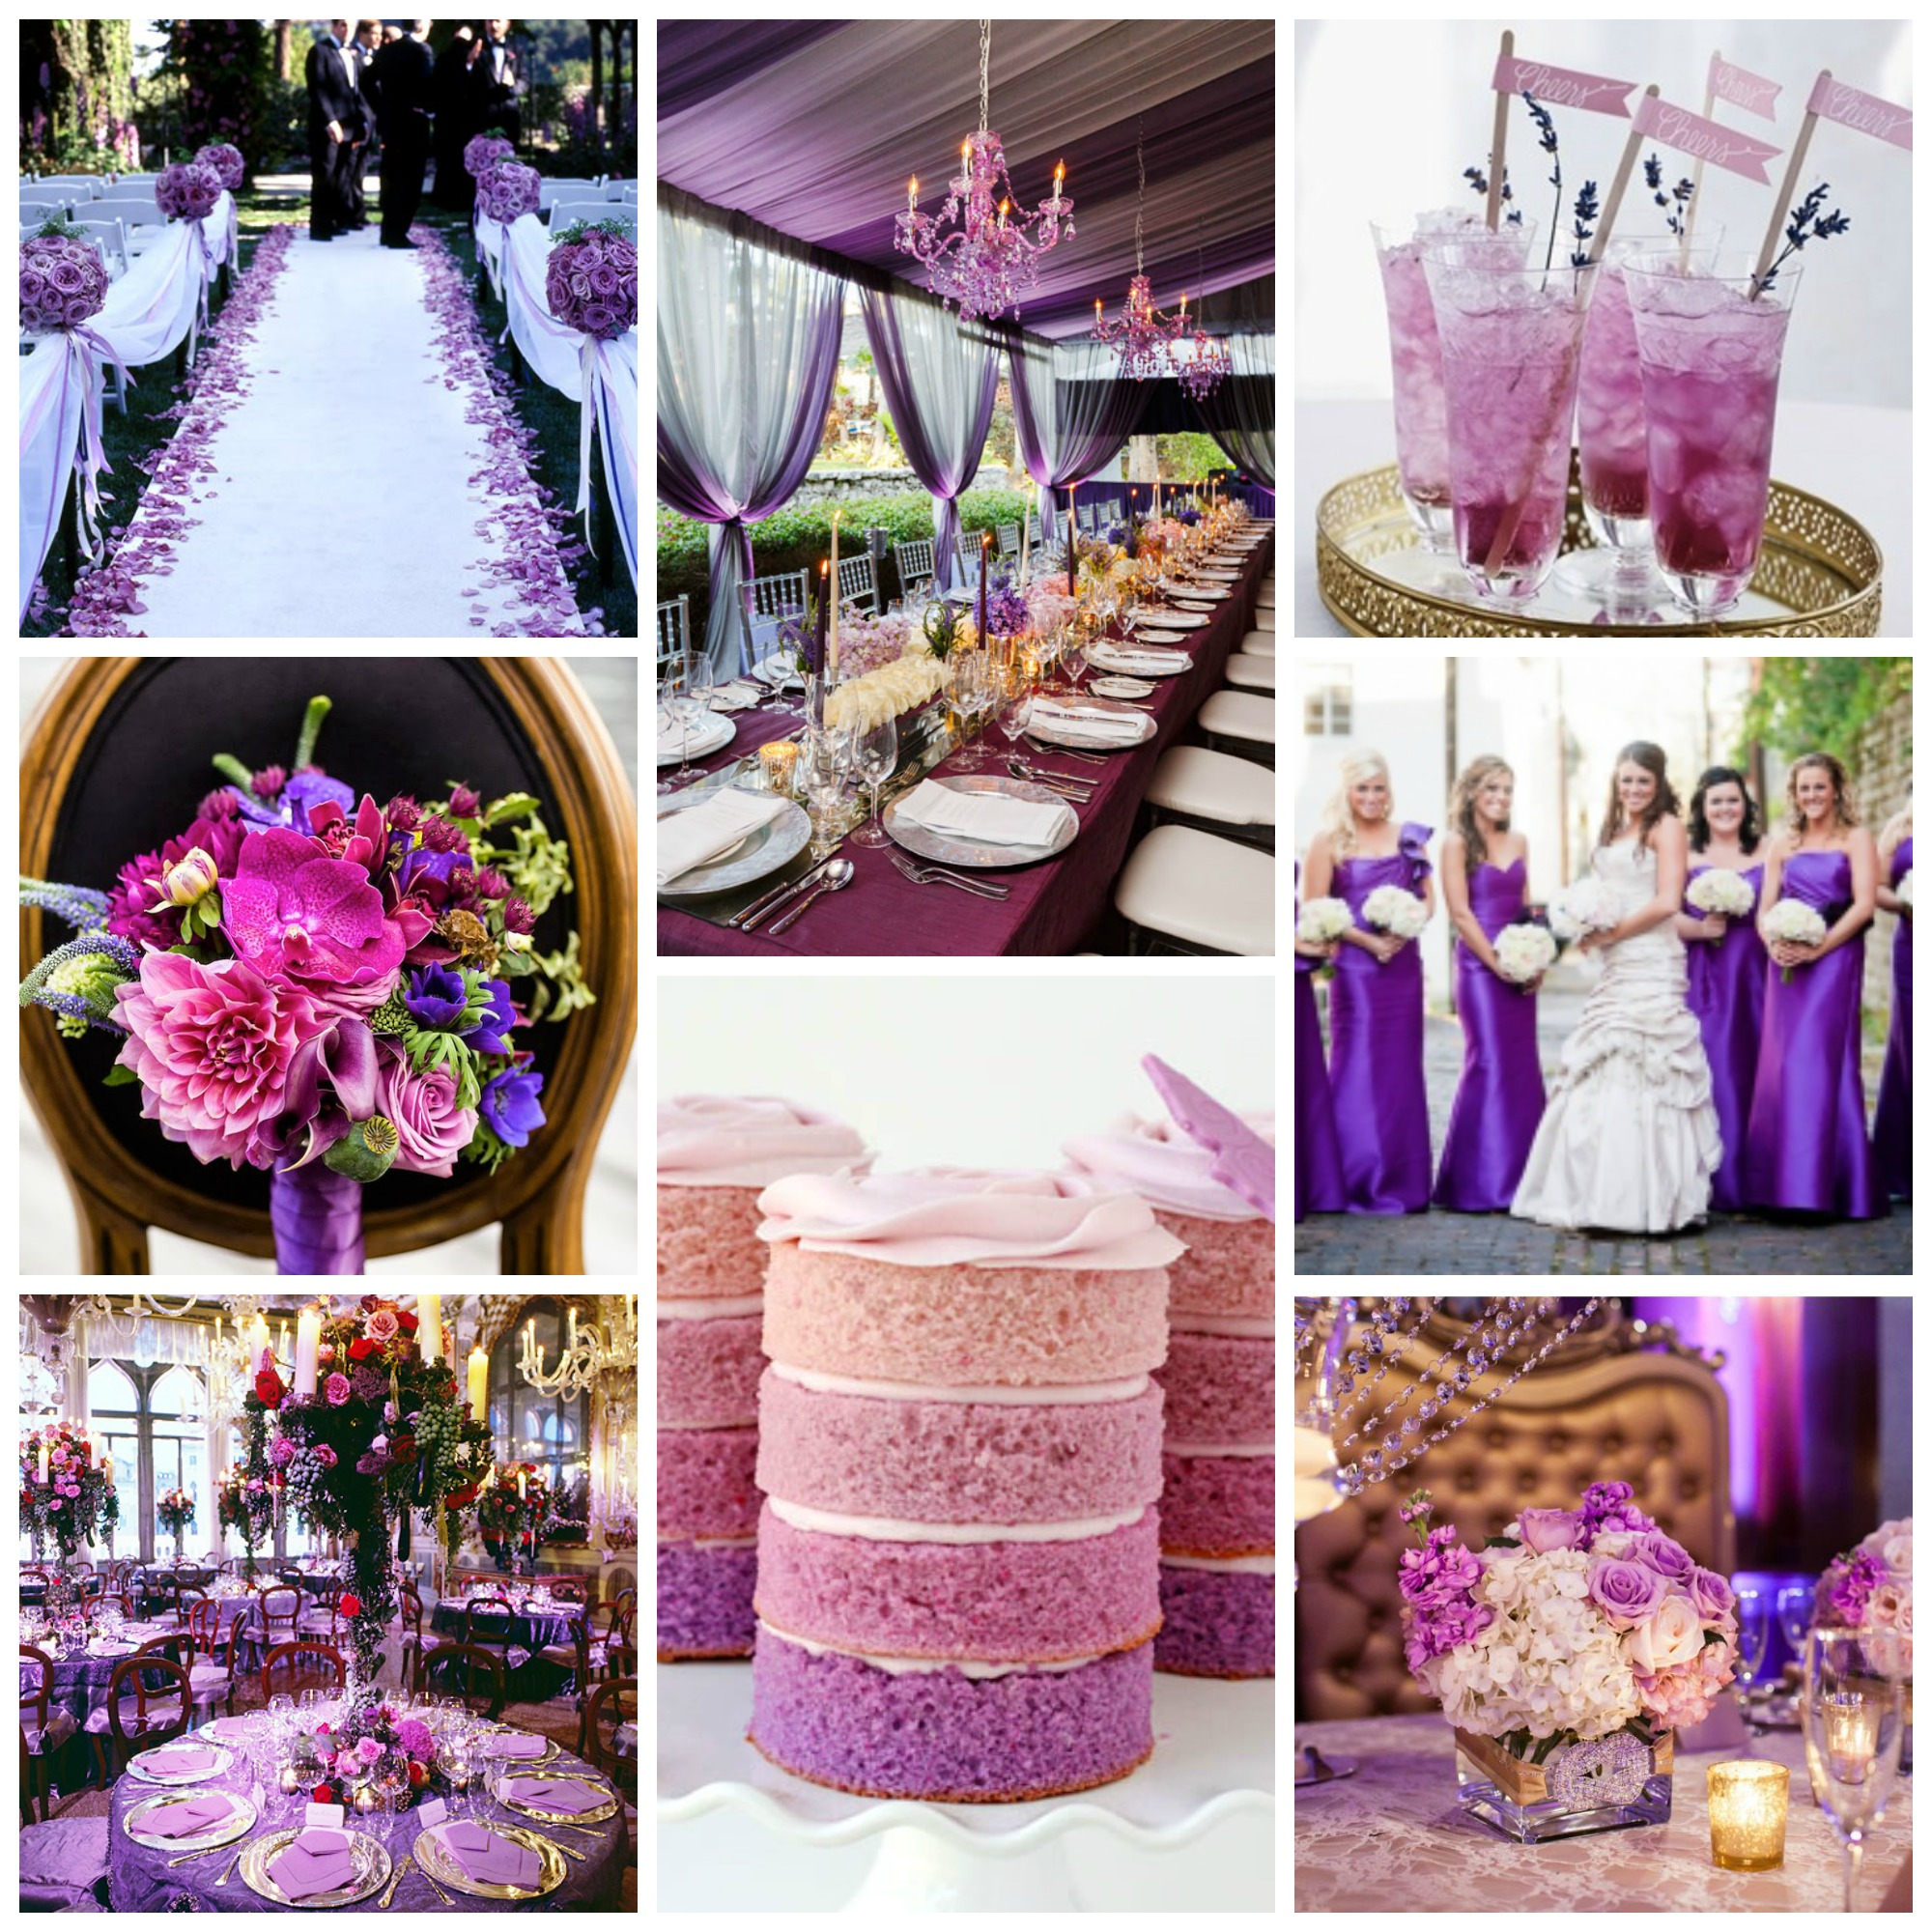 Wedding Themes And Colors: 17 Ways To Make Radiant Orchid Happen In Your Wedding